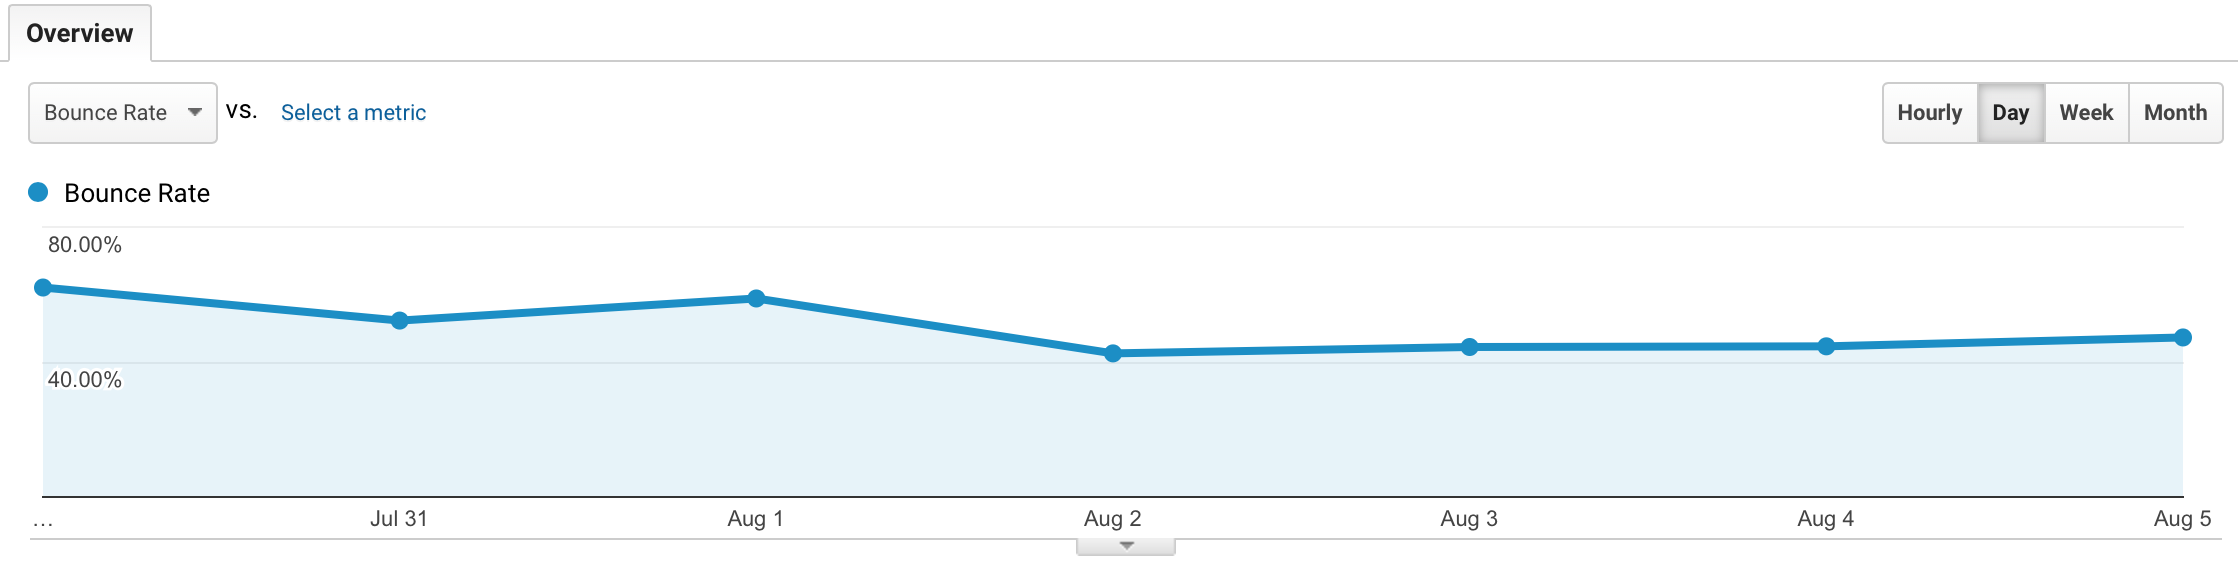 Client Bounce Rate Chart - Google Analytics